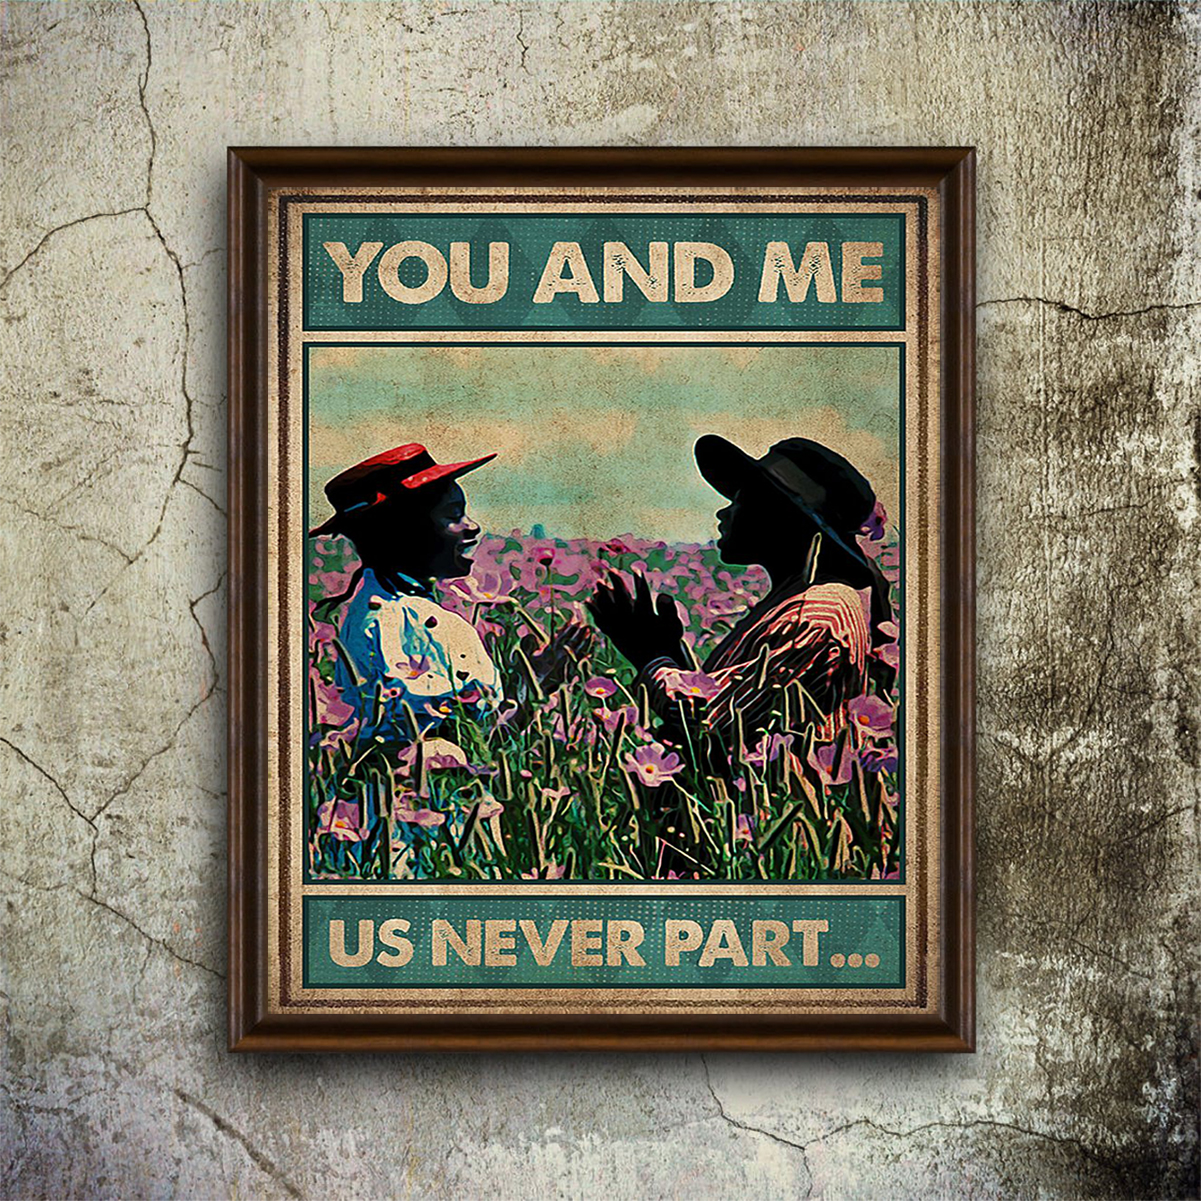 You and me us never part poster A1